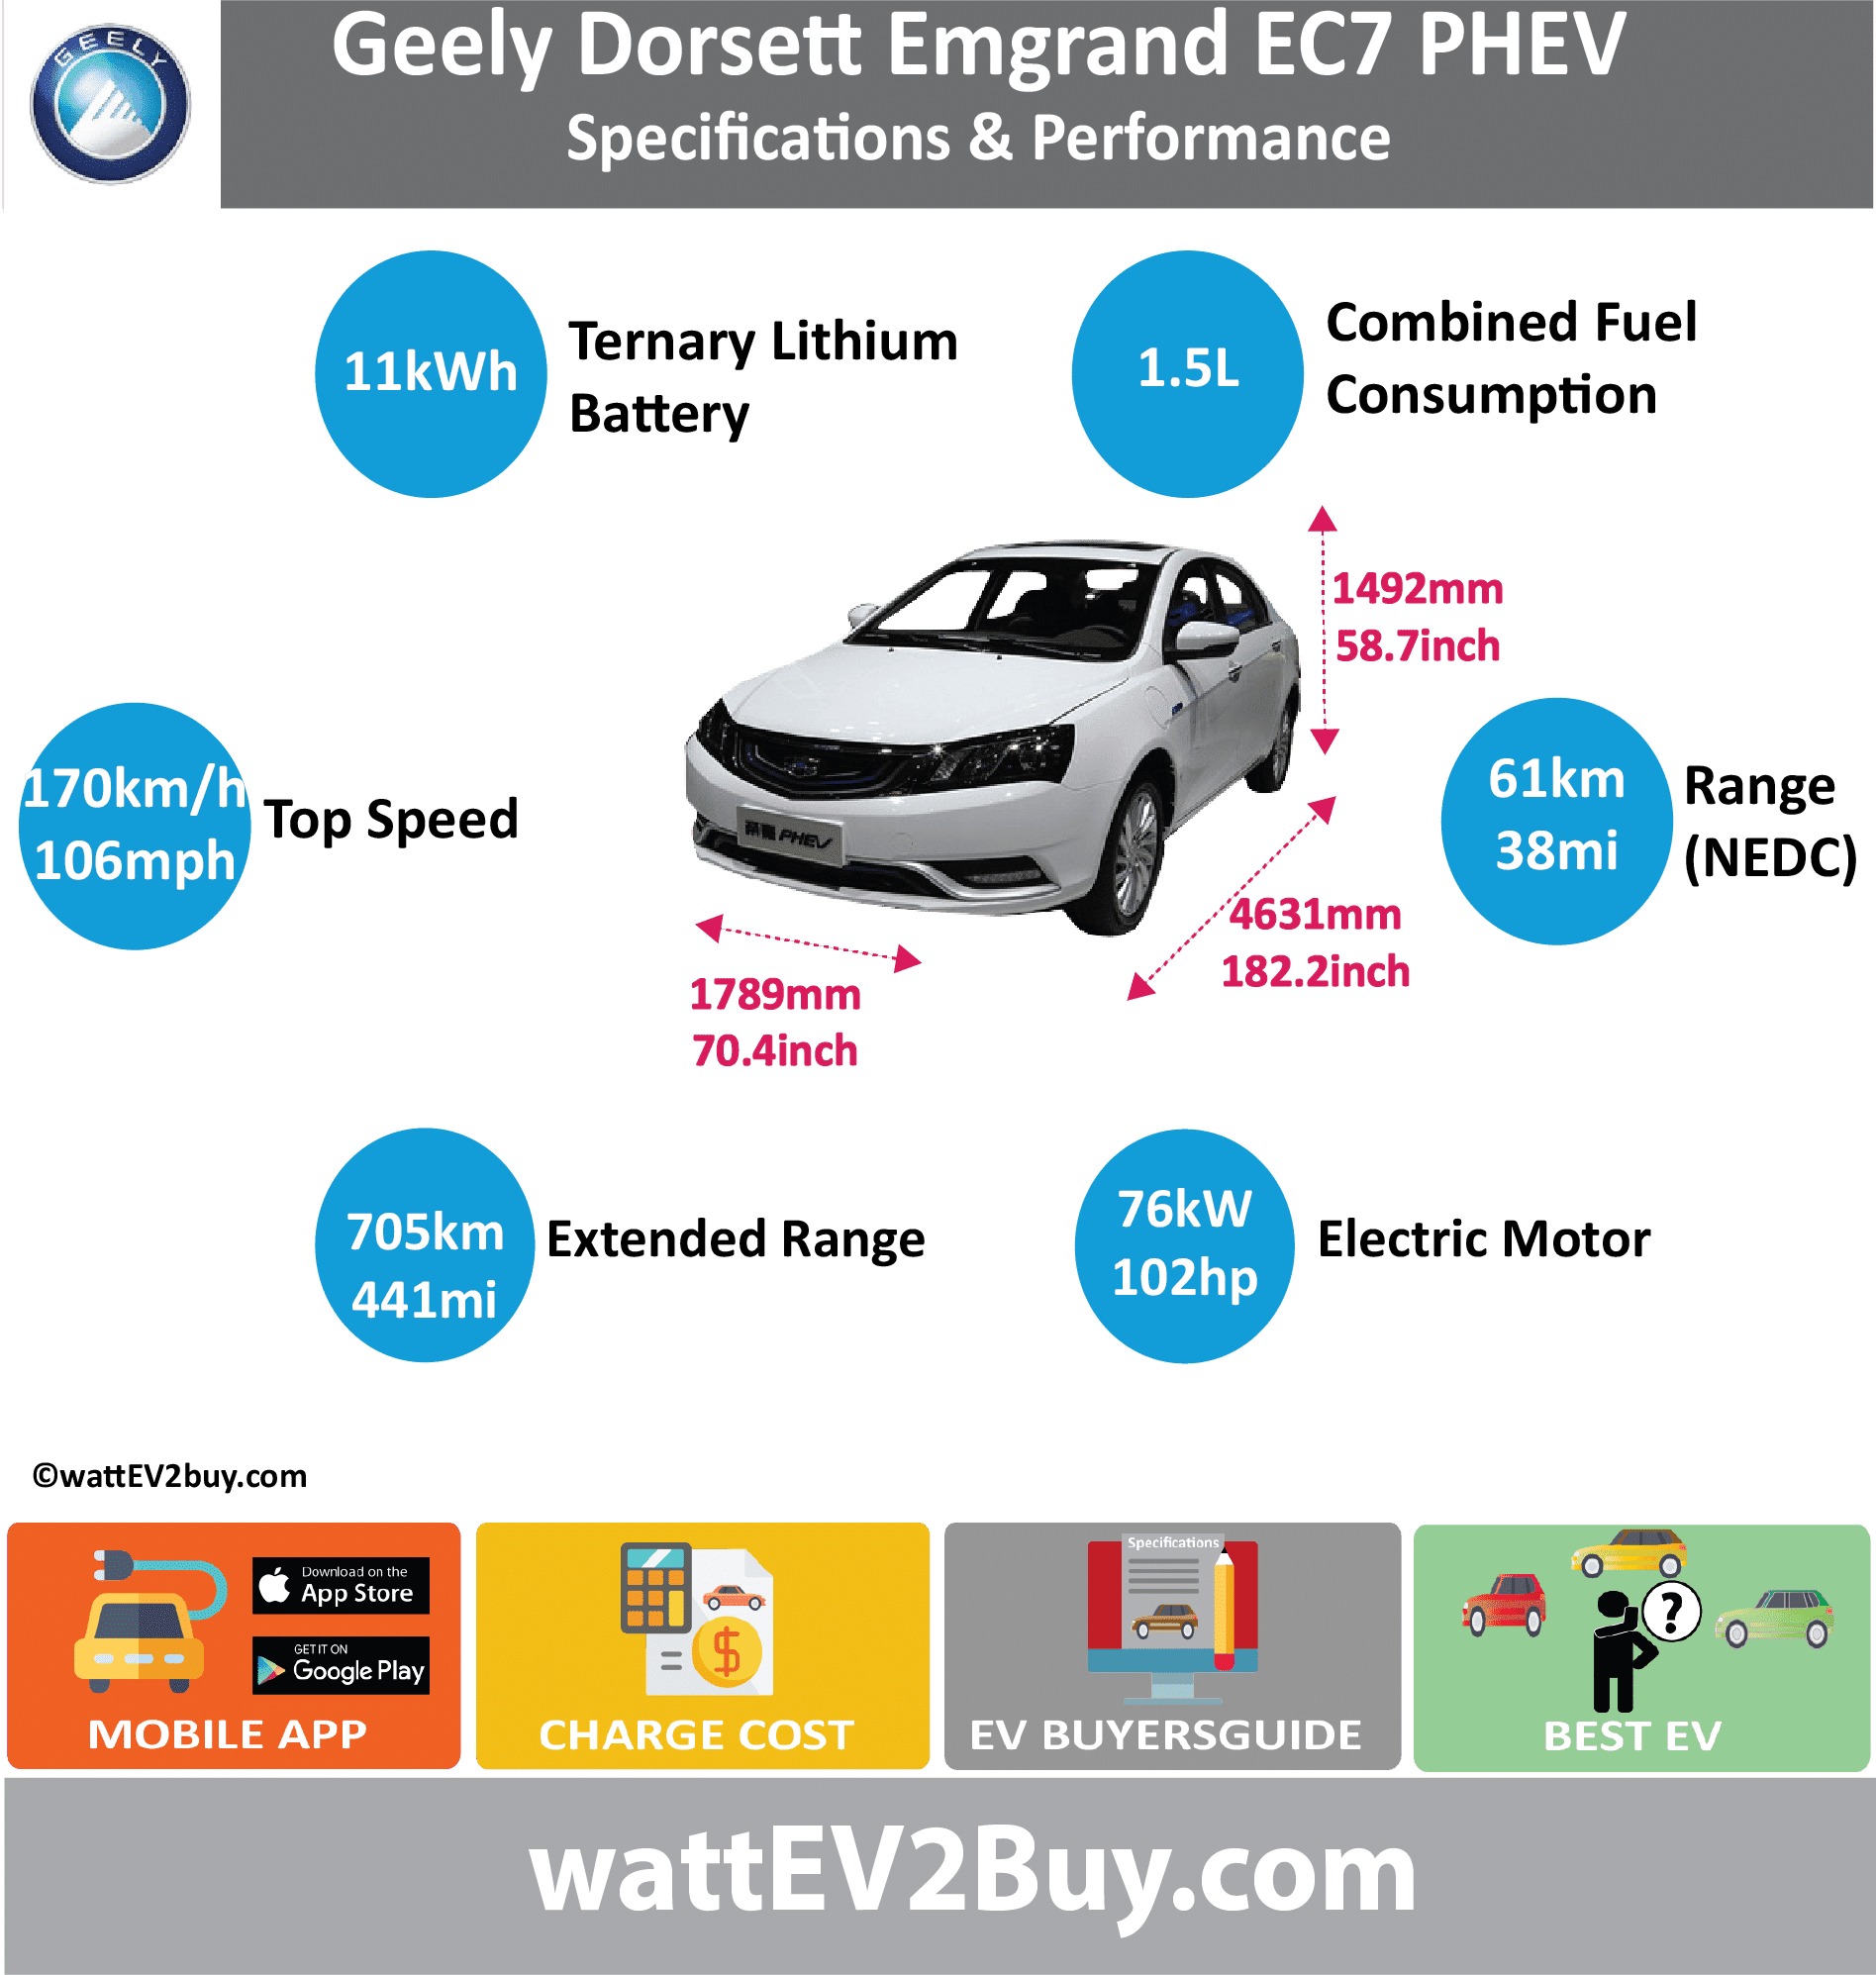 Geely Emgrand PHEV specs wattev2Buy.com 2017 Battery Chemistry Ternary Lithium Battery Capacity kWh 11.3 Battery Nominal rating kWh Voltage V Amps Ah Modules Cells Cell Type Energy Density Wh/kg Weight (kg) 127 Battery Manufacturer Cooling Battery Warranty - years Battery Warranty - km Battery Electric Range - NEDC Mi 38.1 Battery Electric Range - NEDC km 61 Battery Electric Range - EPA Mi Battery Electric Range - EPA km Electric Top Speed - mph Electric Top Speed - km/h Acceleration 0 - 62mph sec Onboard Charger kW LV 1 Charge kW LV 1 Charge Time (Hours) LV 2 Charge kW LV 2 Charge Time (Hours) LV 3 CCS/Combo kW LV 3 Charge Time (min to 80%) Charge Connector MPGe Combined - miles MPGe Combined - km MPGe City - miles MPGe City - km MPGe Highway - miles MPGe Highway - km Electric Motor - Front Max Power - hp 102 Max Power - kW 76 Max Torque - lb.ft Max Torque - N.m Electric Motor - Rear Max Power - hp Max Power - kW Max Torque - lb.ft Max Torque - N.m Electric Motor Output kW Electric Motor Output hp Transmission Drivetrain Energy Consumption kWh/100miles Utility Factor MSRP (before incentives & destination) Combustion 1.5L 1498CC Extended Range - mile 441 Extended Range - km 705 ICE Max Power - hp ICE Max Power - kW ICE Max Torque - lb.ft ICE Max Torque - N.m ICE Top speed - mph 109.4 ICE Top speed - km/h 175 ICE Acceleration 0 - 50km/h sec ICE Acceleration 0 - 62mph sec ICE MPGe Combined - miles ICE MPGe Combined - km ICE MPGe City - miles ICE MPGe City - km ICE MPGe Highway - miles ICE MPGe Highway - km ICE Transmission ICE Fuel Consumption l/100km 5.1 ICE Emission Rating ICE Emissions CO2/mi grams ICE Emissions CO2/km grams Total System Max Power - hp 163 Max Power - kW 120 Max Torque - lb.ft Max Torque - N.m Fuel Consumption l/100km 1.5 MPGe Combined - miles Vehicle Seating 5 Trims 3 Doors 4 Dimensions Fuel tank (l) GVWR (kg) 1913 Curb Weight (kg) 1538 Wheelbase (mm) 2650 Ground Clearance (mm) 190 Lenght (mm) 4631 Width (mm) 1789 Height (mm) 1492 Lenght (inc) 182.2 Width (inc) 70.4 Height (inc) 58.7 Wheelbase (inc) 104.2 Other Auto Show Unveil Shanghai Unveiled Apr-17 First Delivery Sep-17